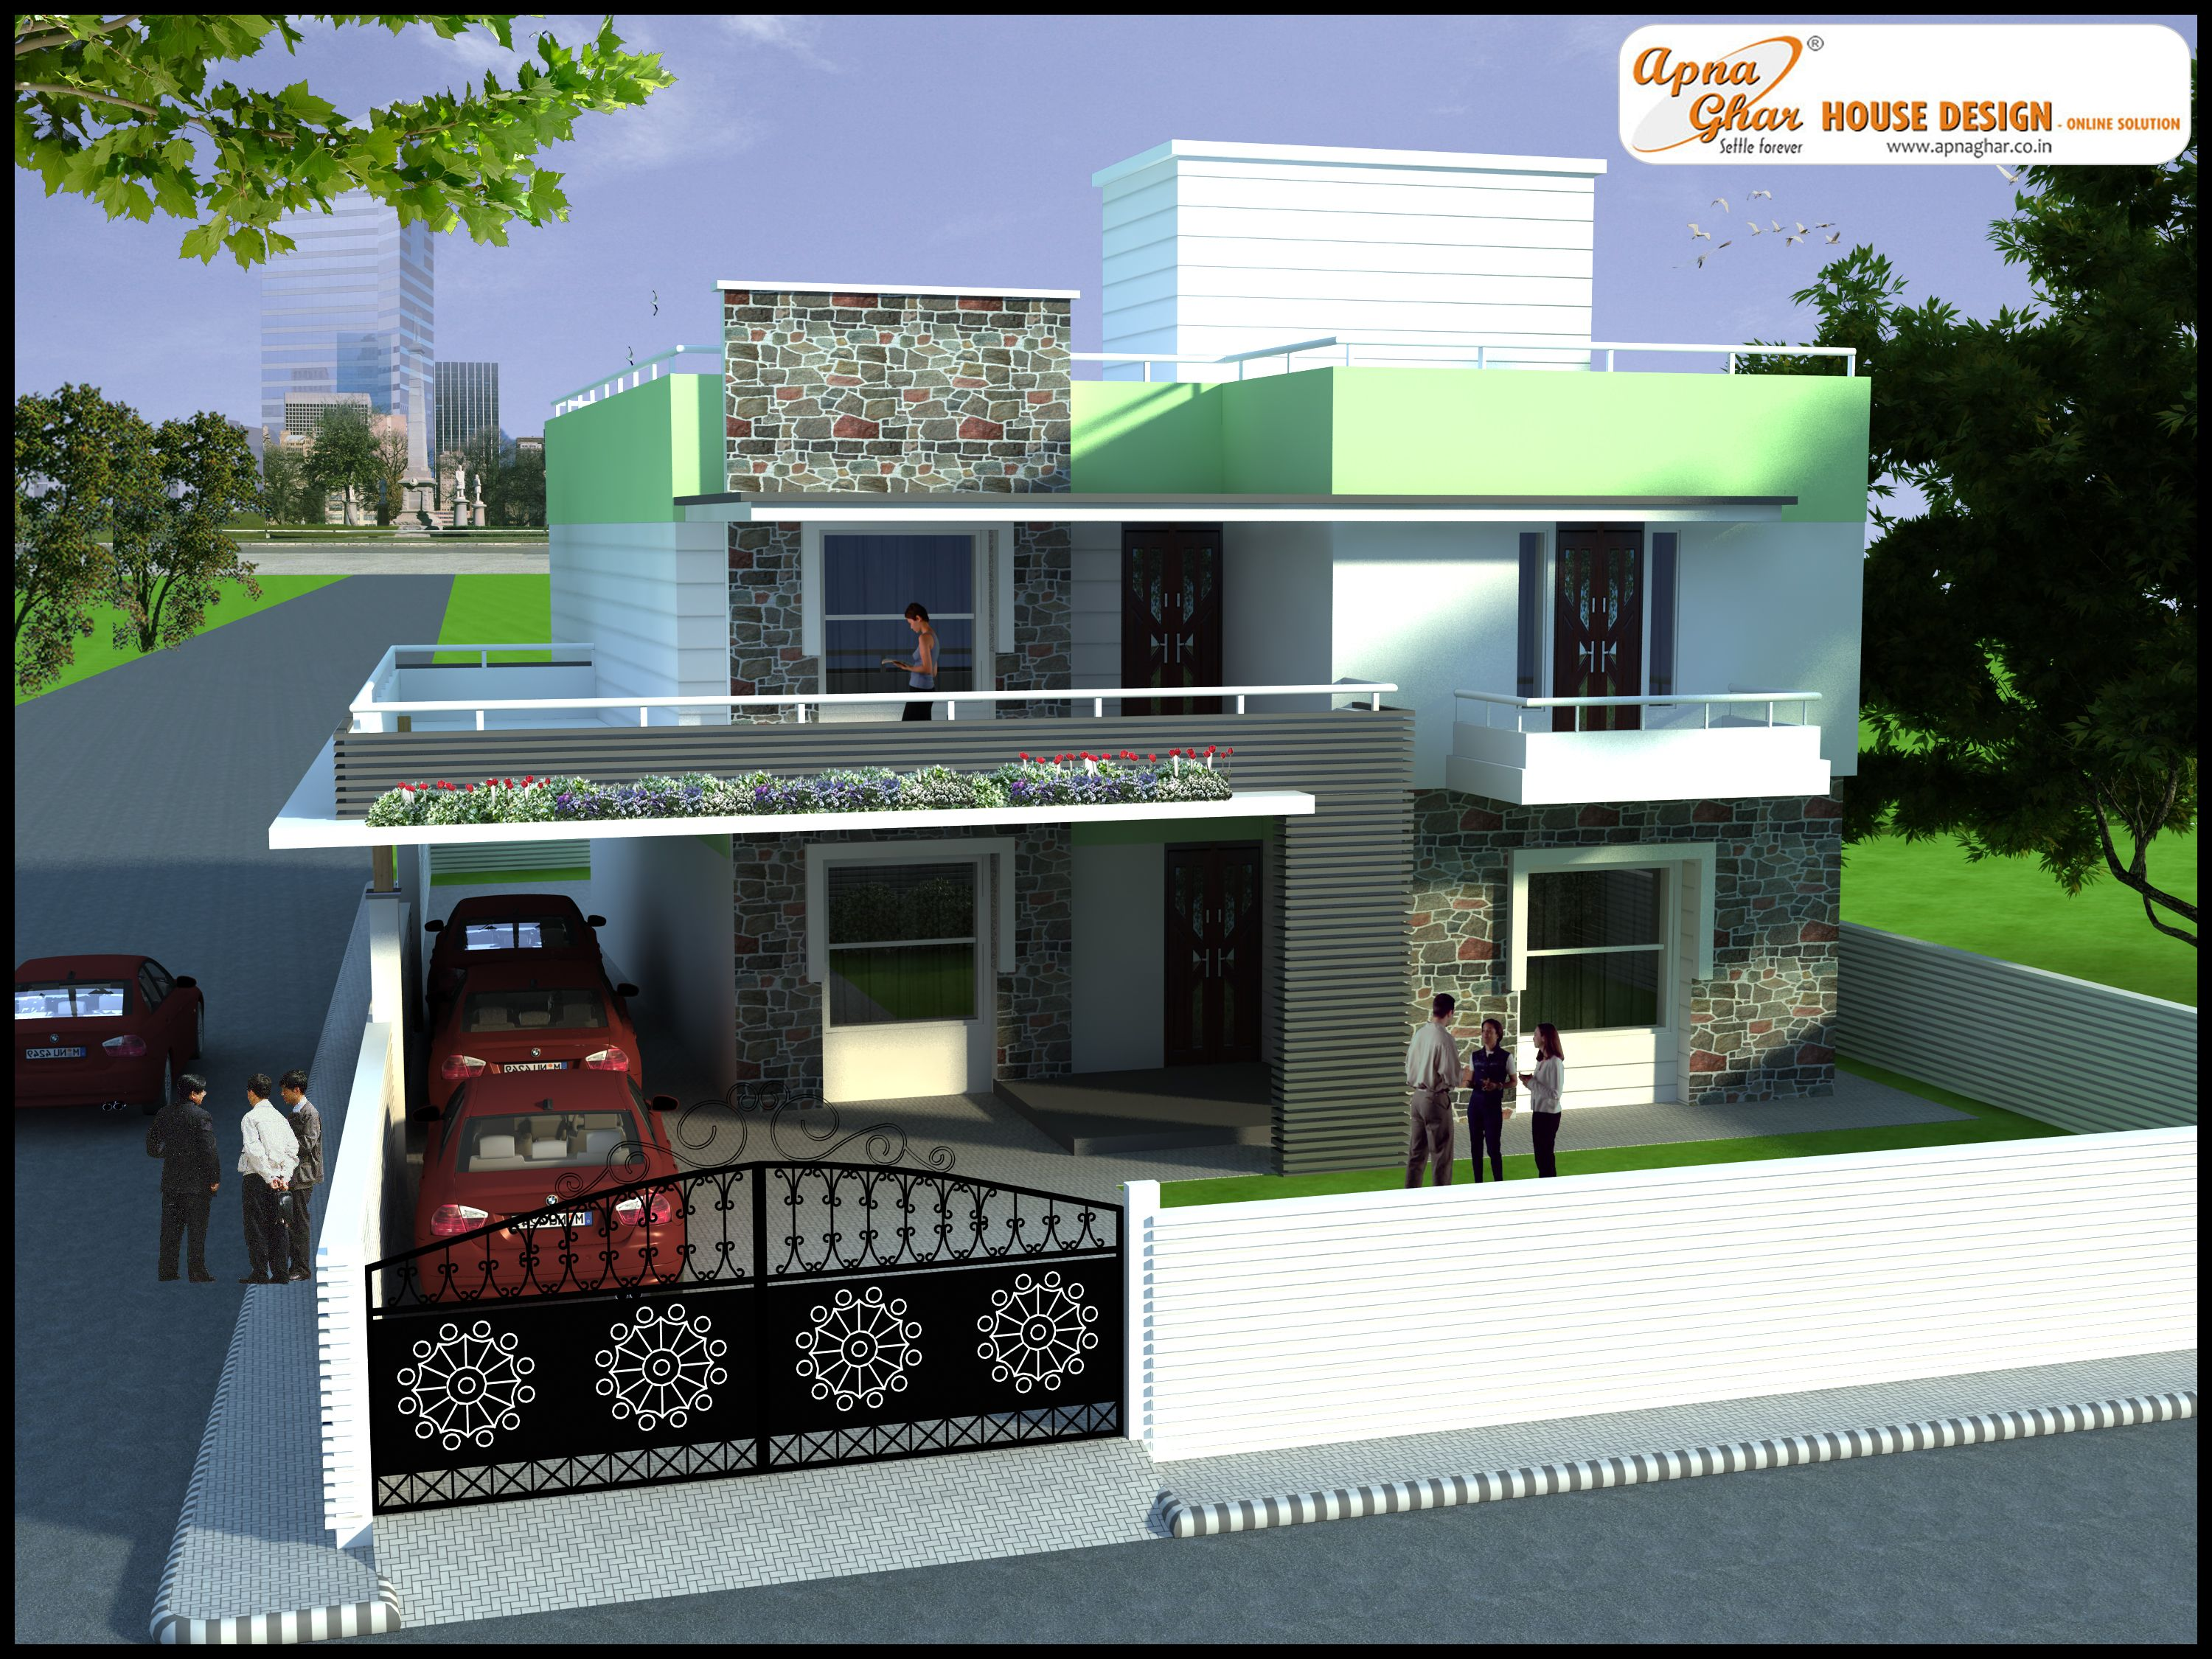 4 bedrooms duplex house design in 450m2 15m x 30m ground floor 4 bedrooms duplex house design in 450m2 15m x 30m ground floor